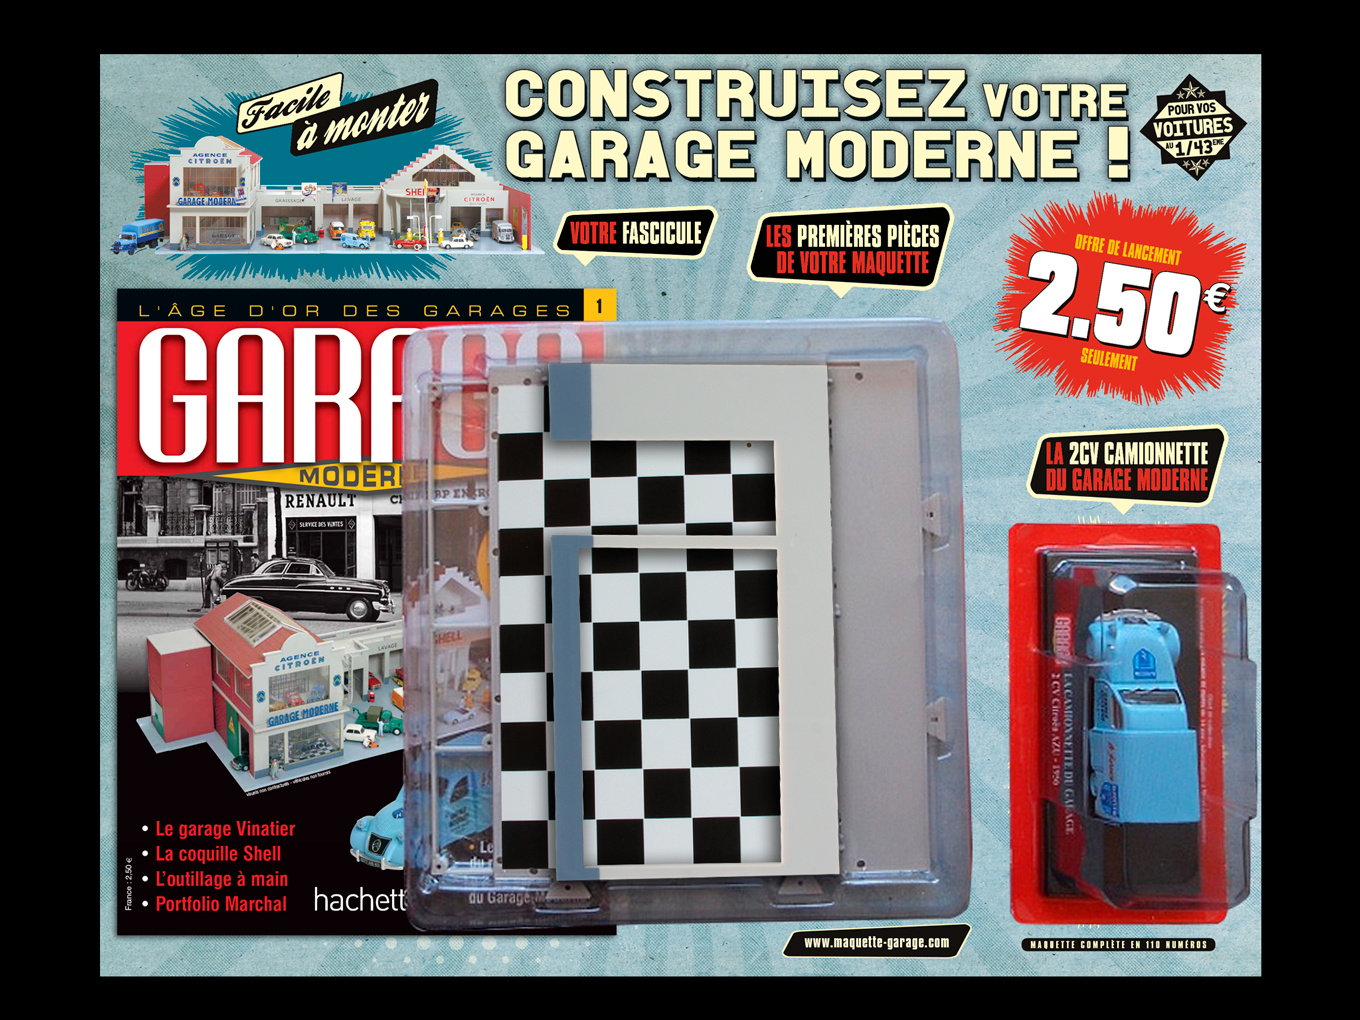 garage moderne hachette editions the big yellow directeur artistique freelance